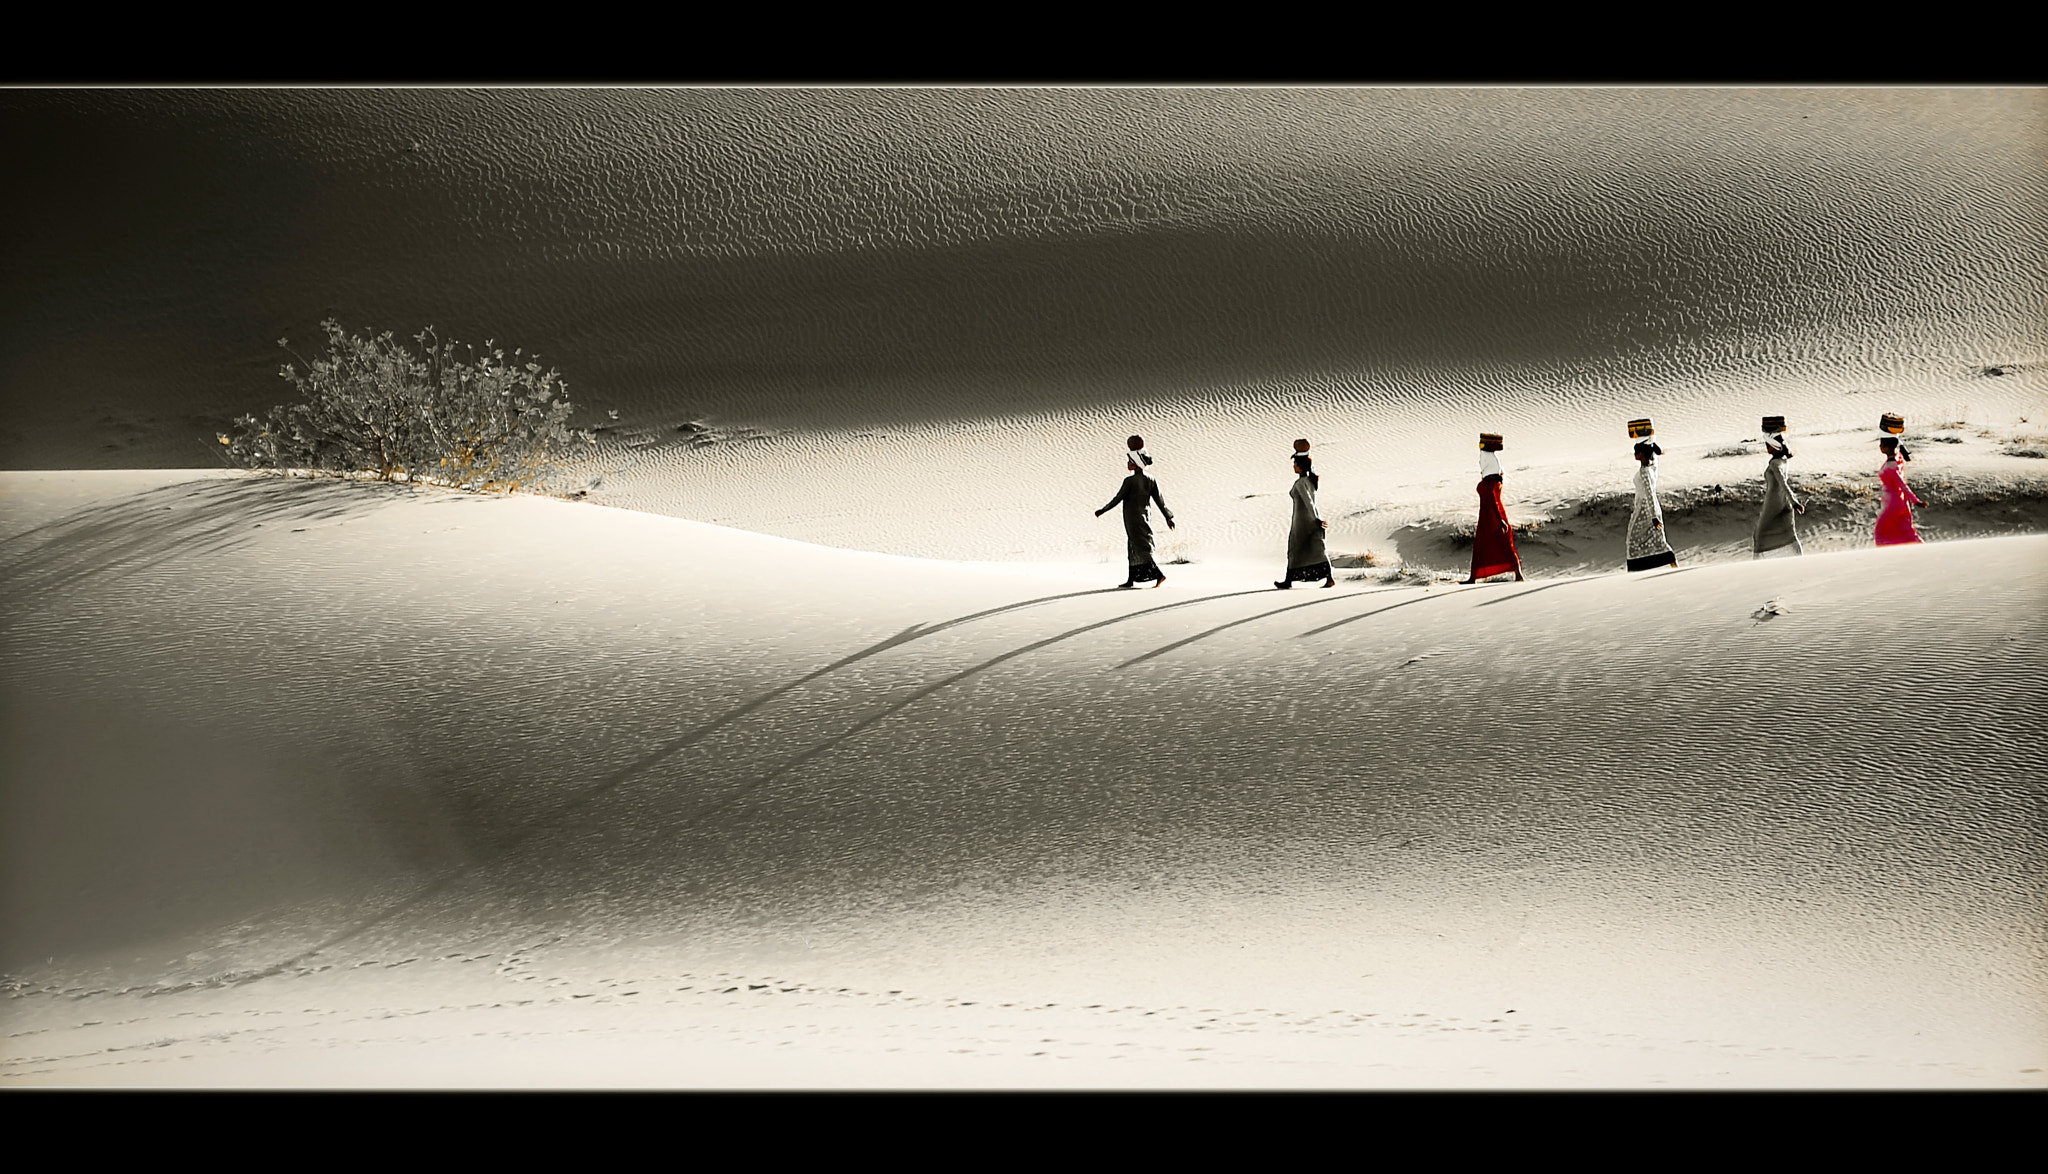 Photograph Sand hill by Vu Le on 500px